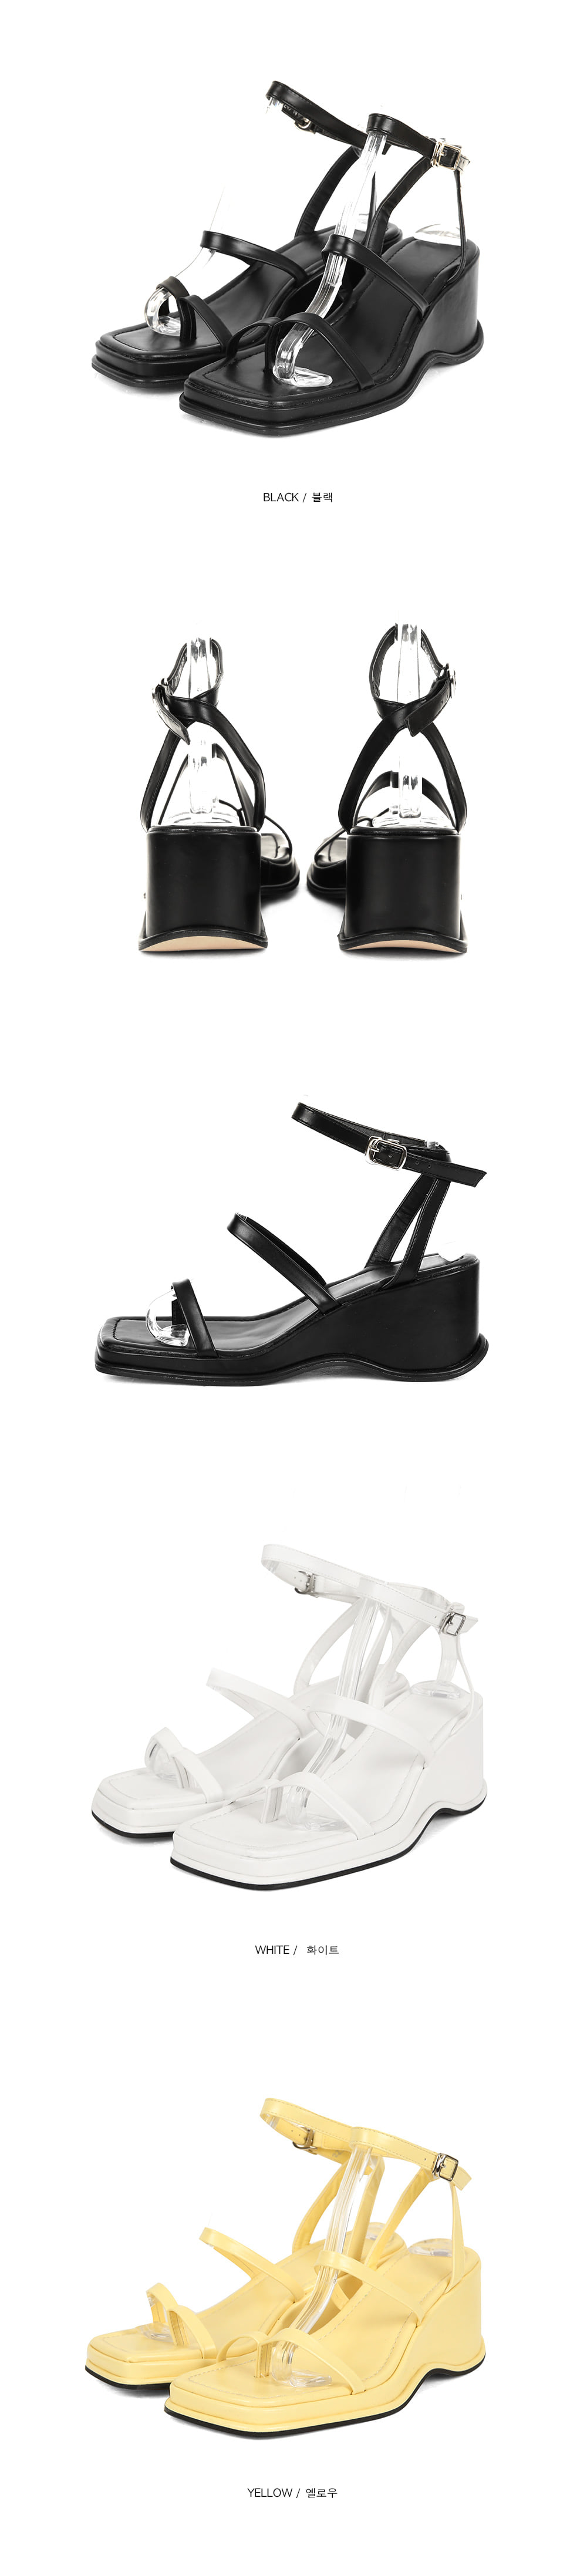 strap wedge heel sandals